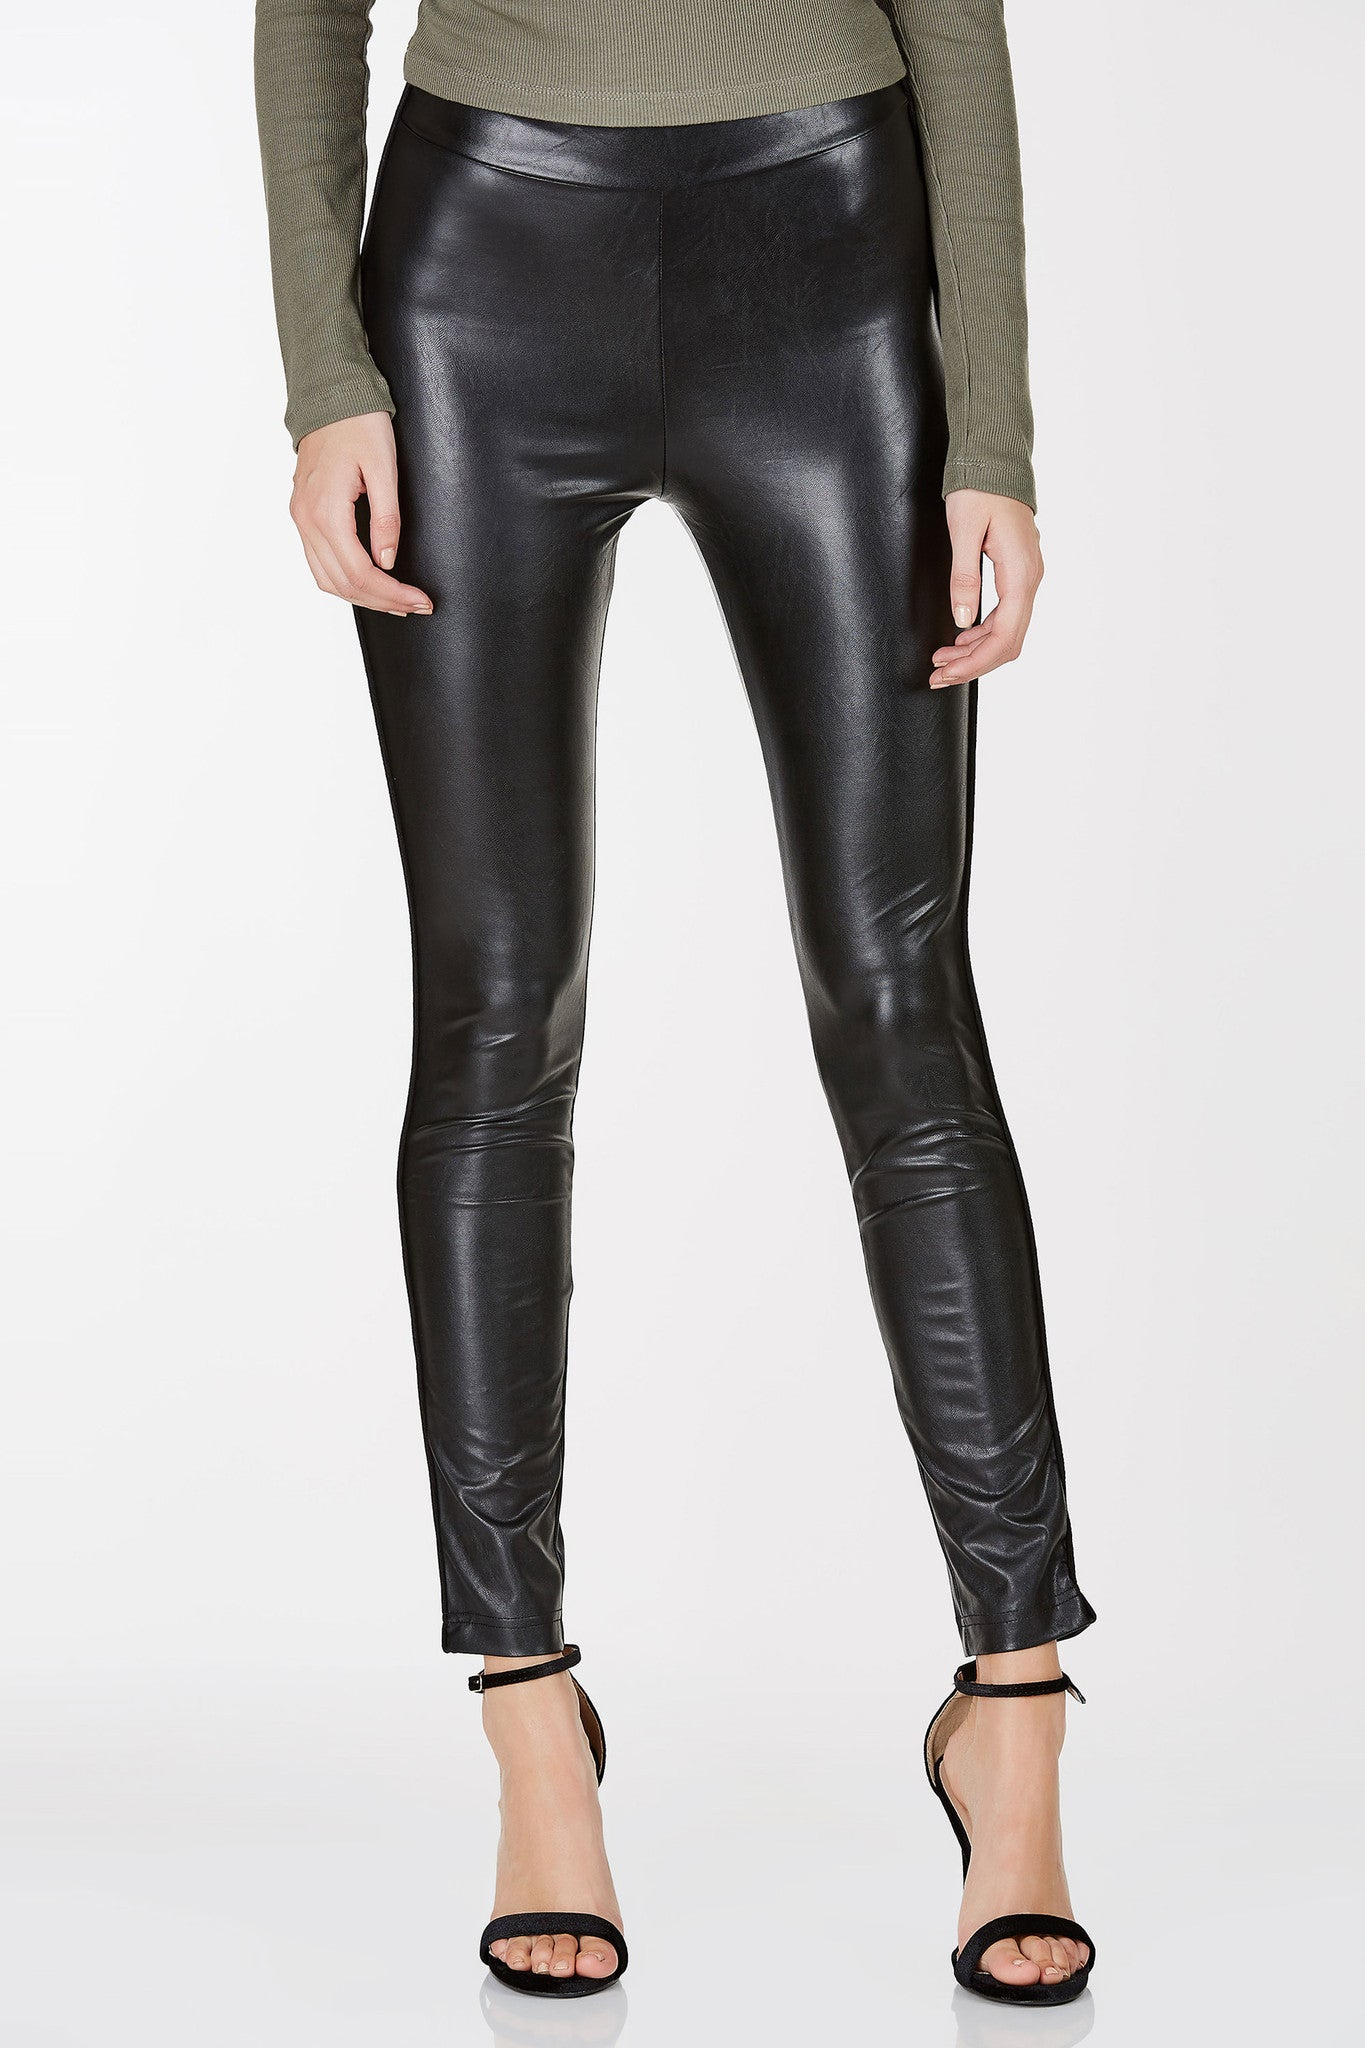 High rise leggings with faux leather finish and contrast piping down each side.